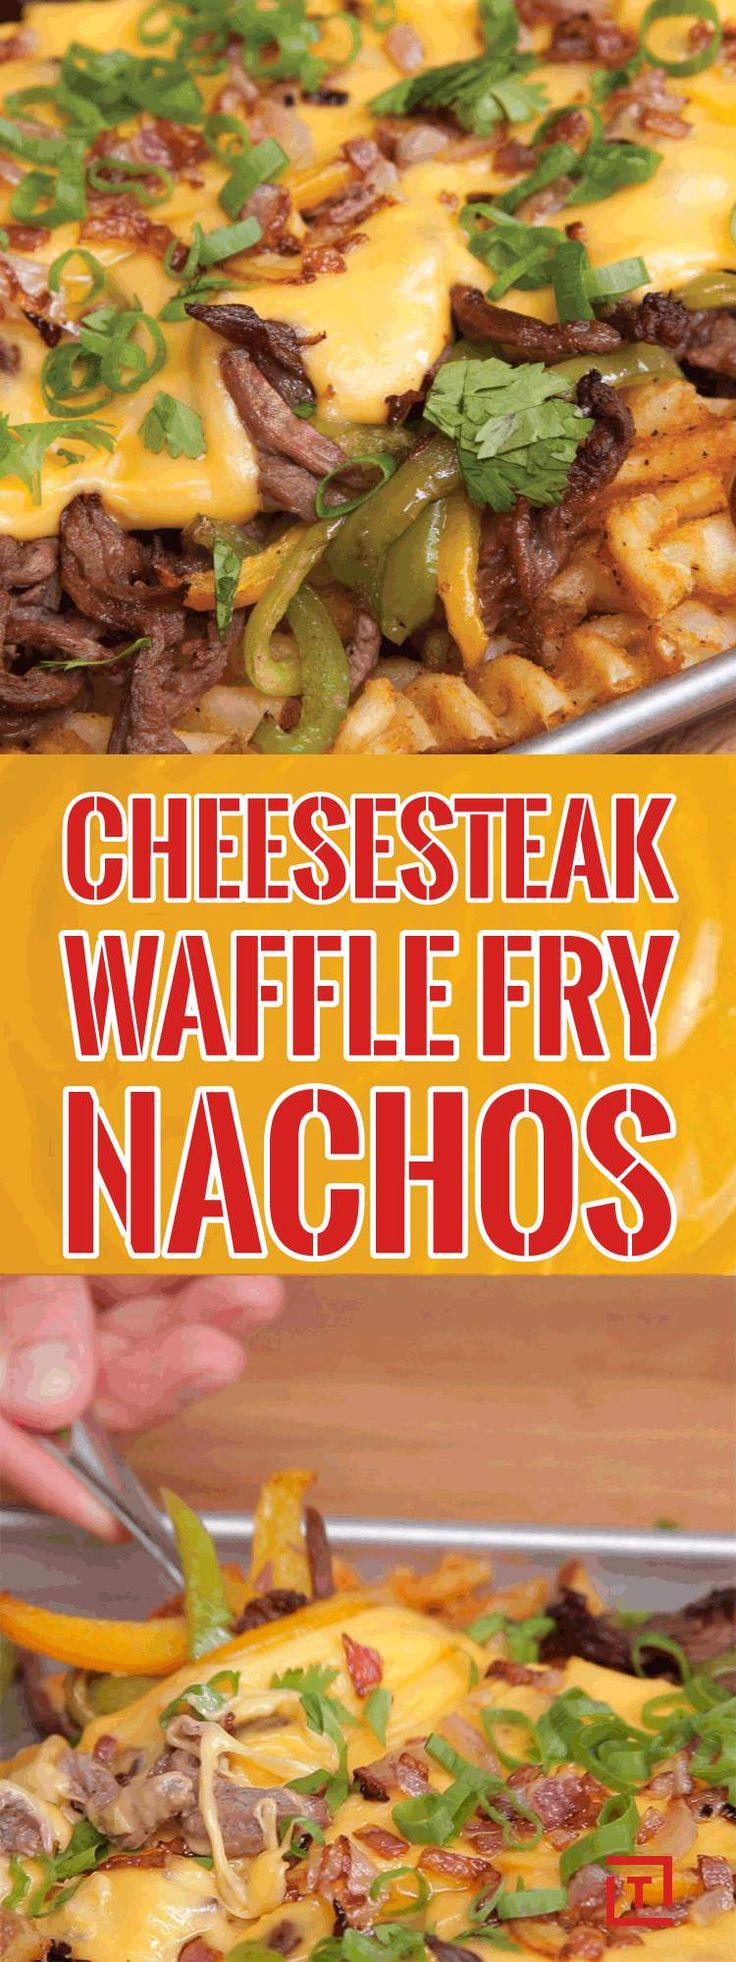 Philly Cheesesteak Waffle Fry Nachos Change the Nacho Game Forever